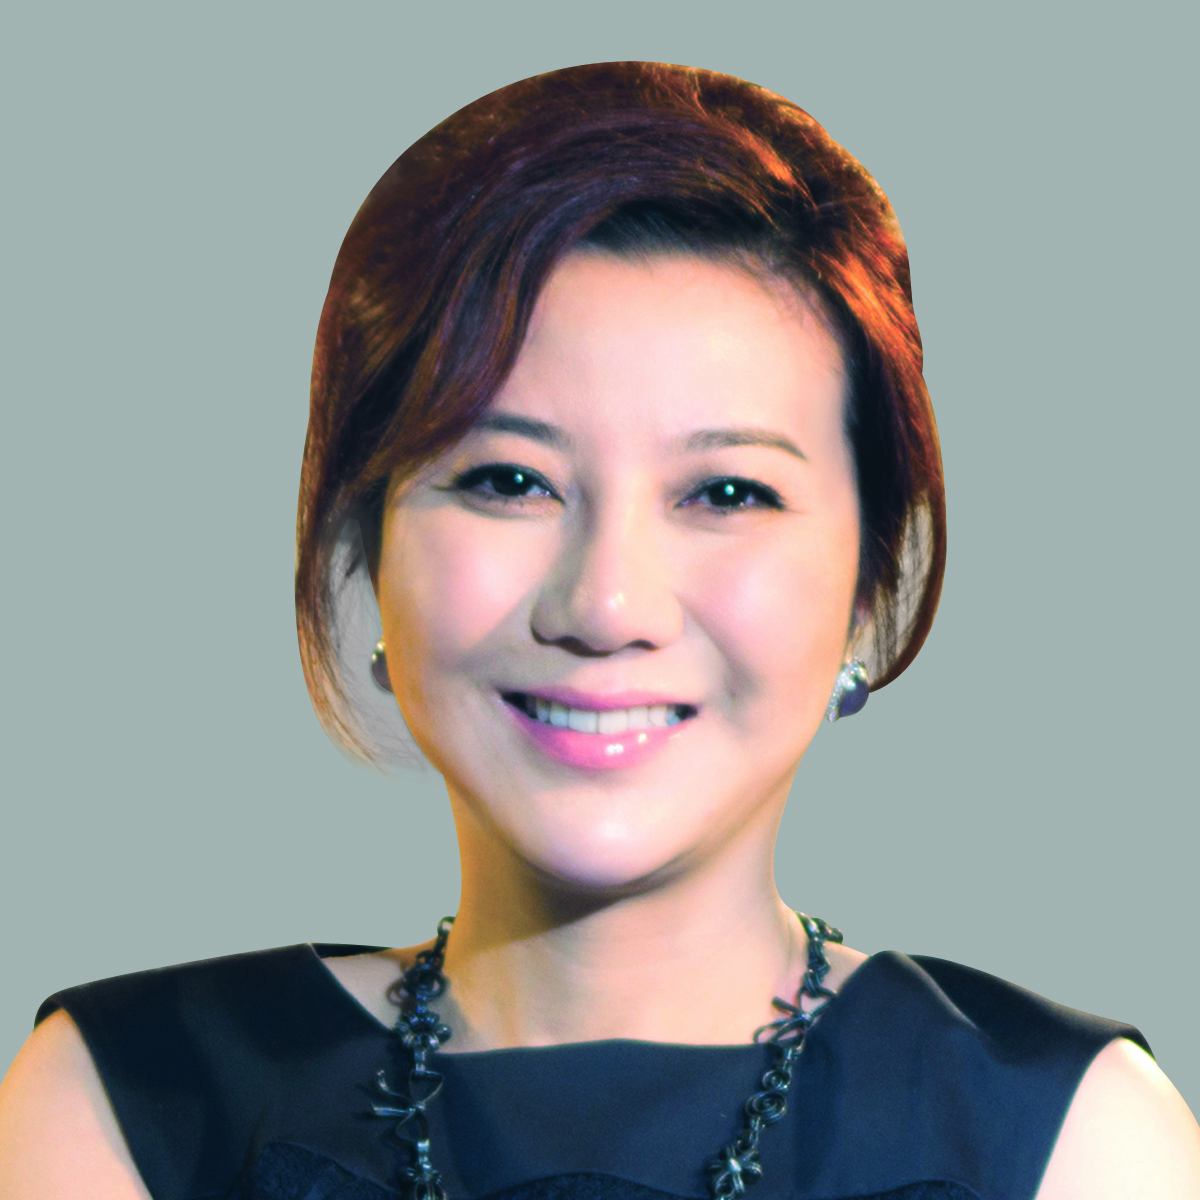 CSOFT International CEO Ms. Shunee Yee